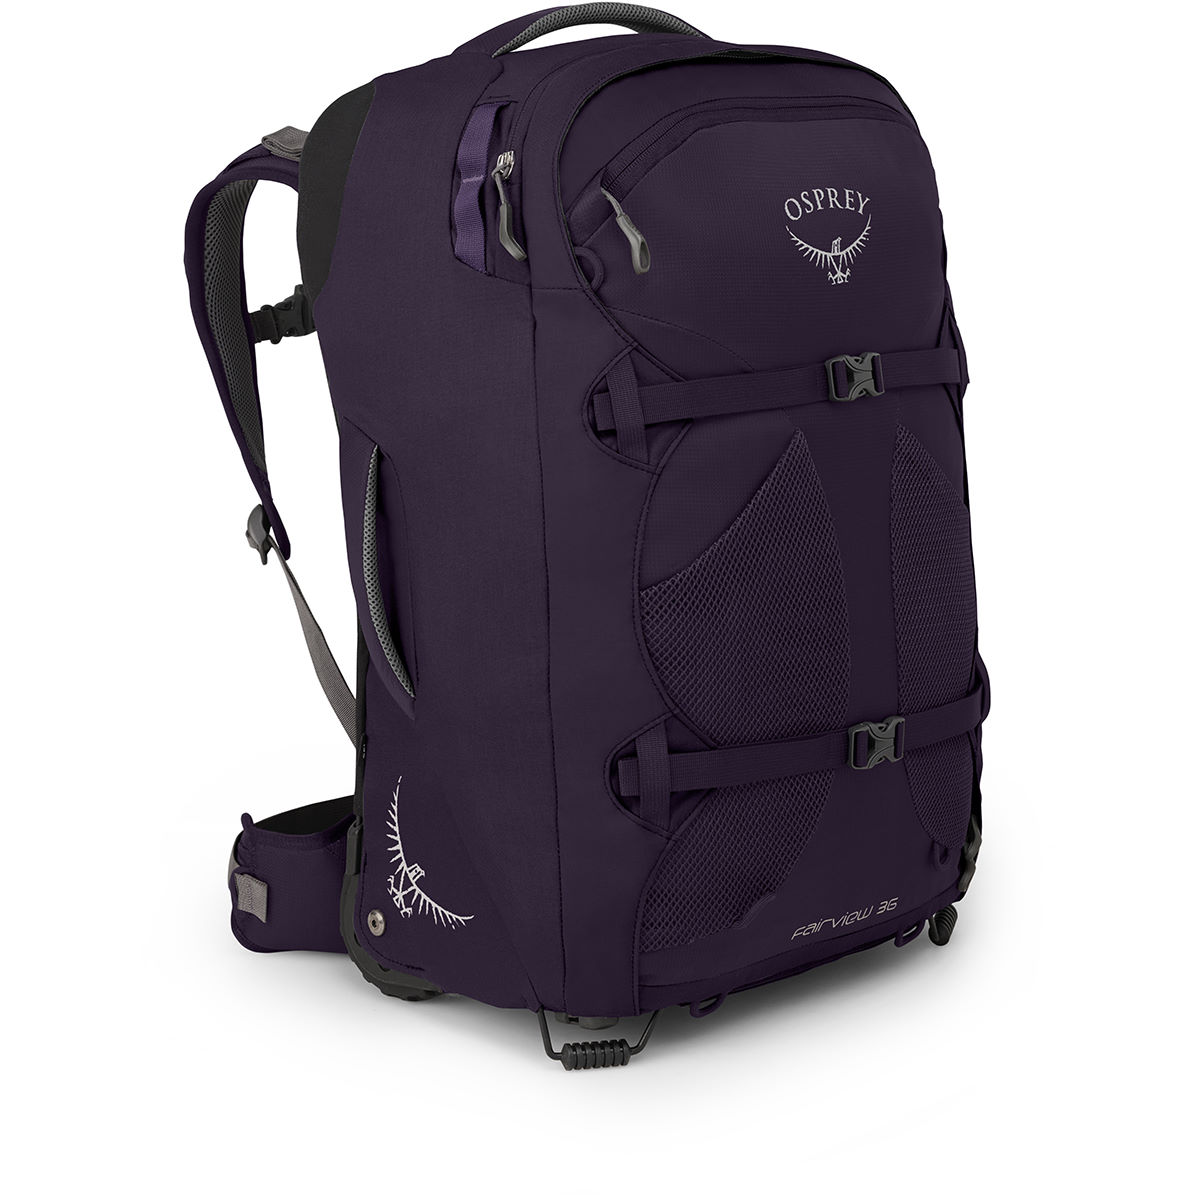 Osprey Osprey Fairview Wheels 36 Bag   Rucksacks